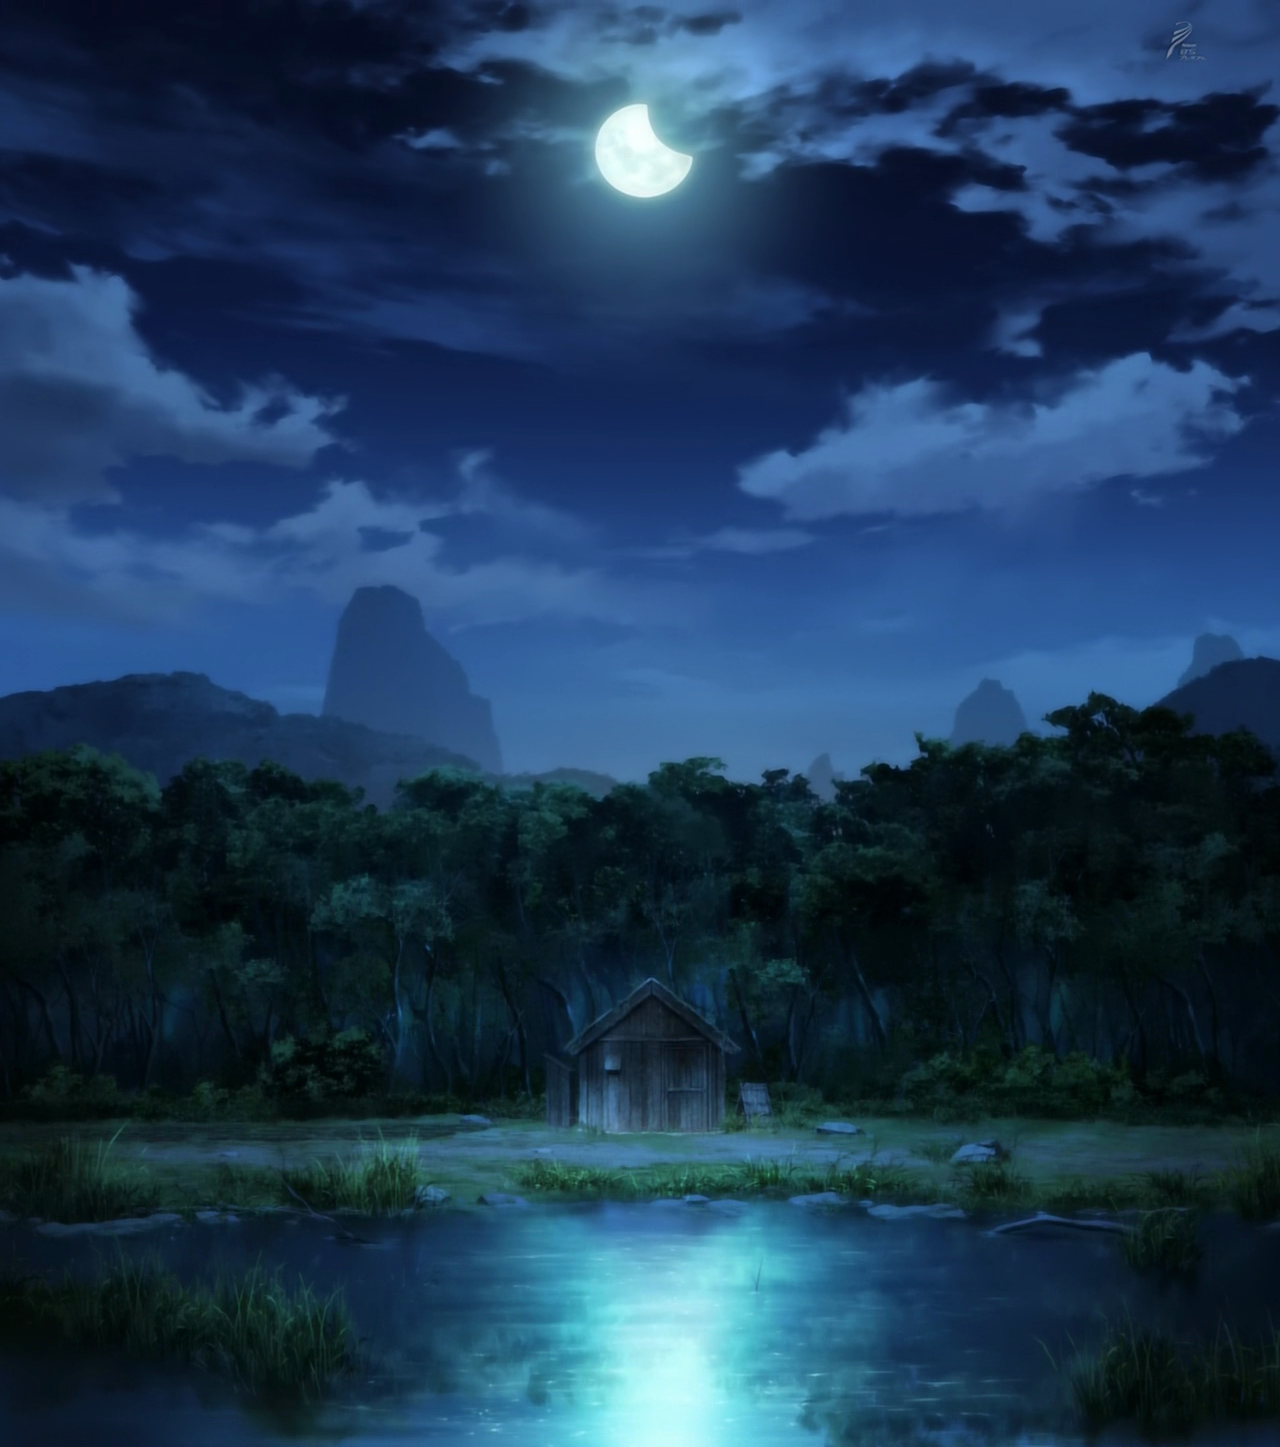 image shins houses view at night anime s1png